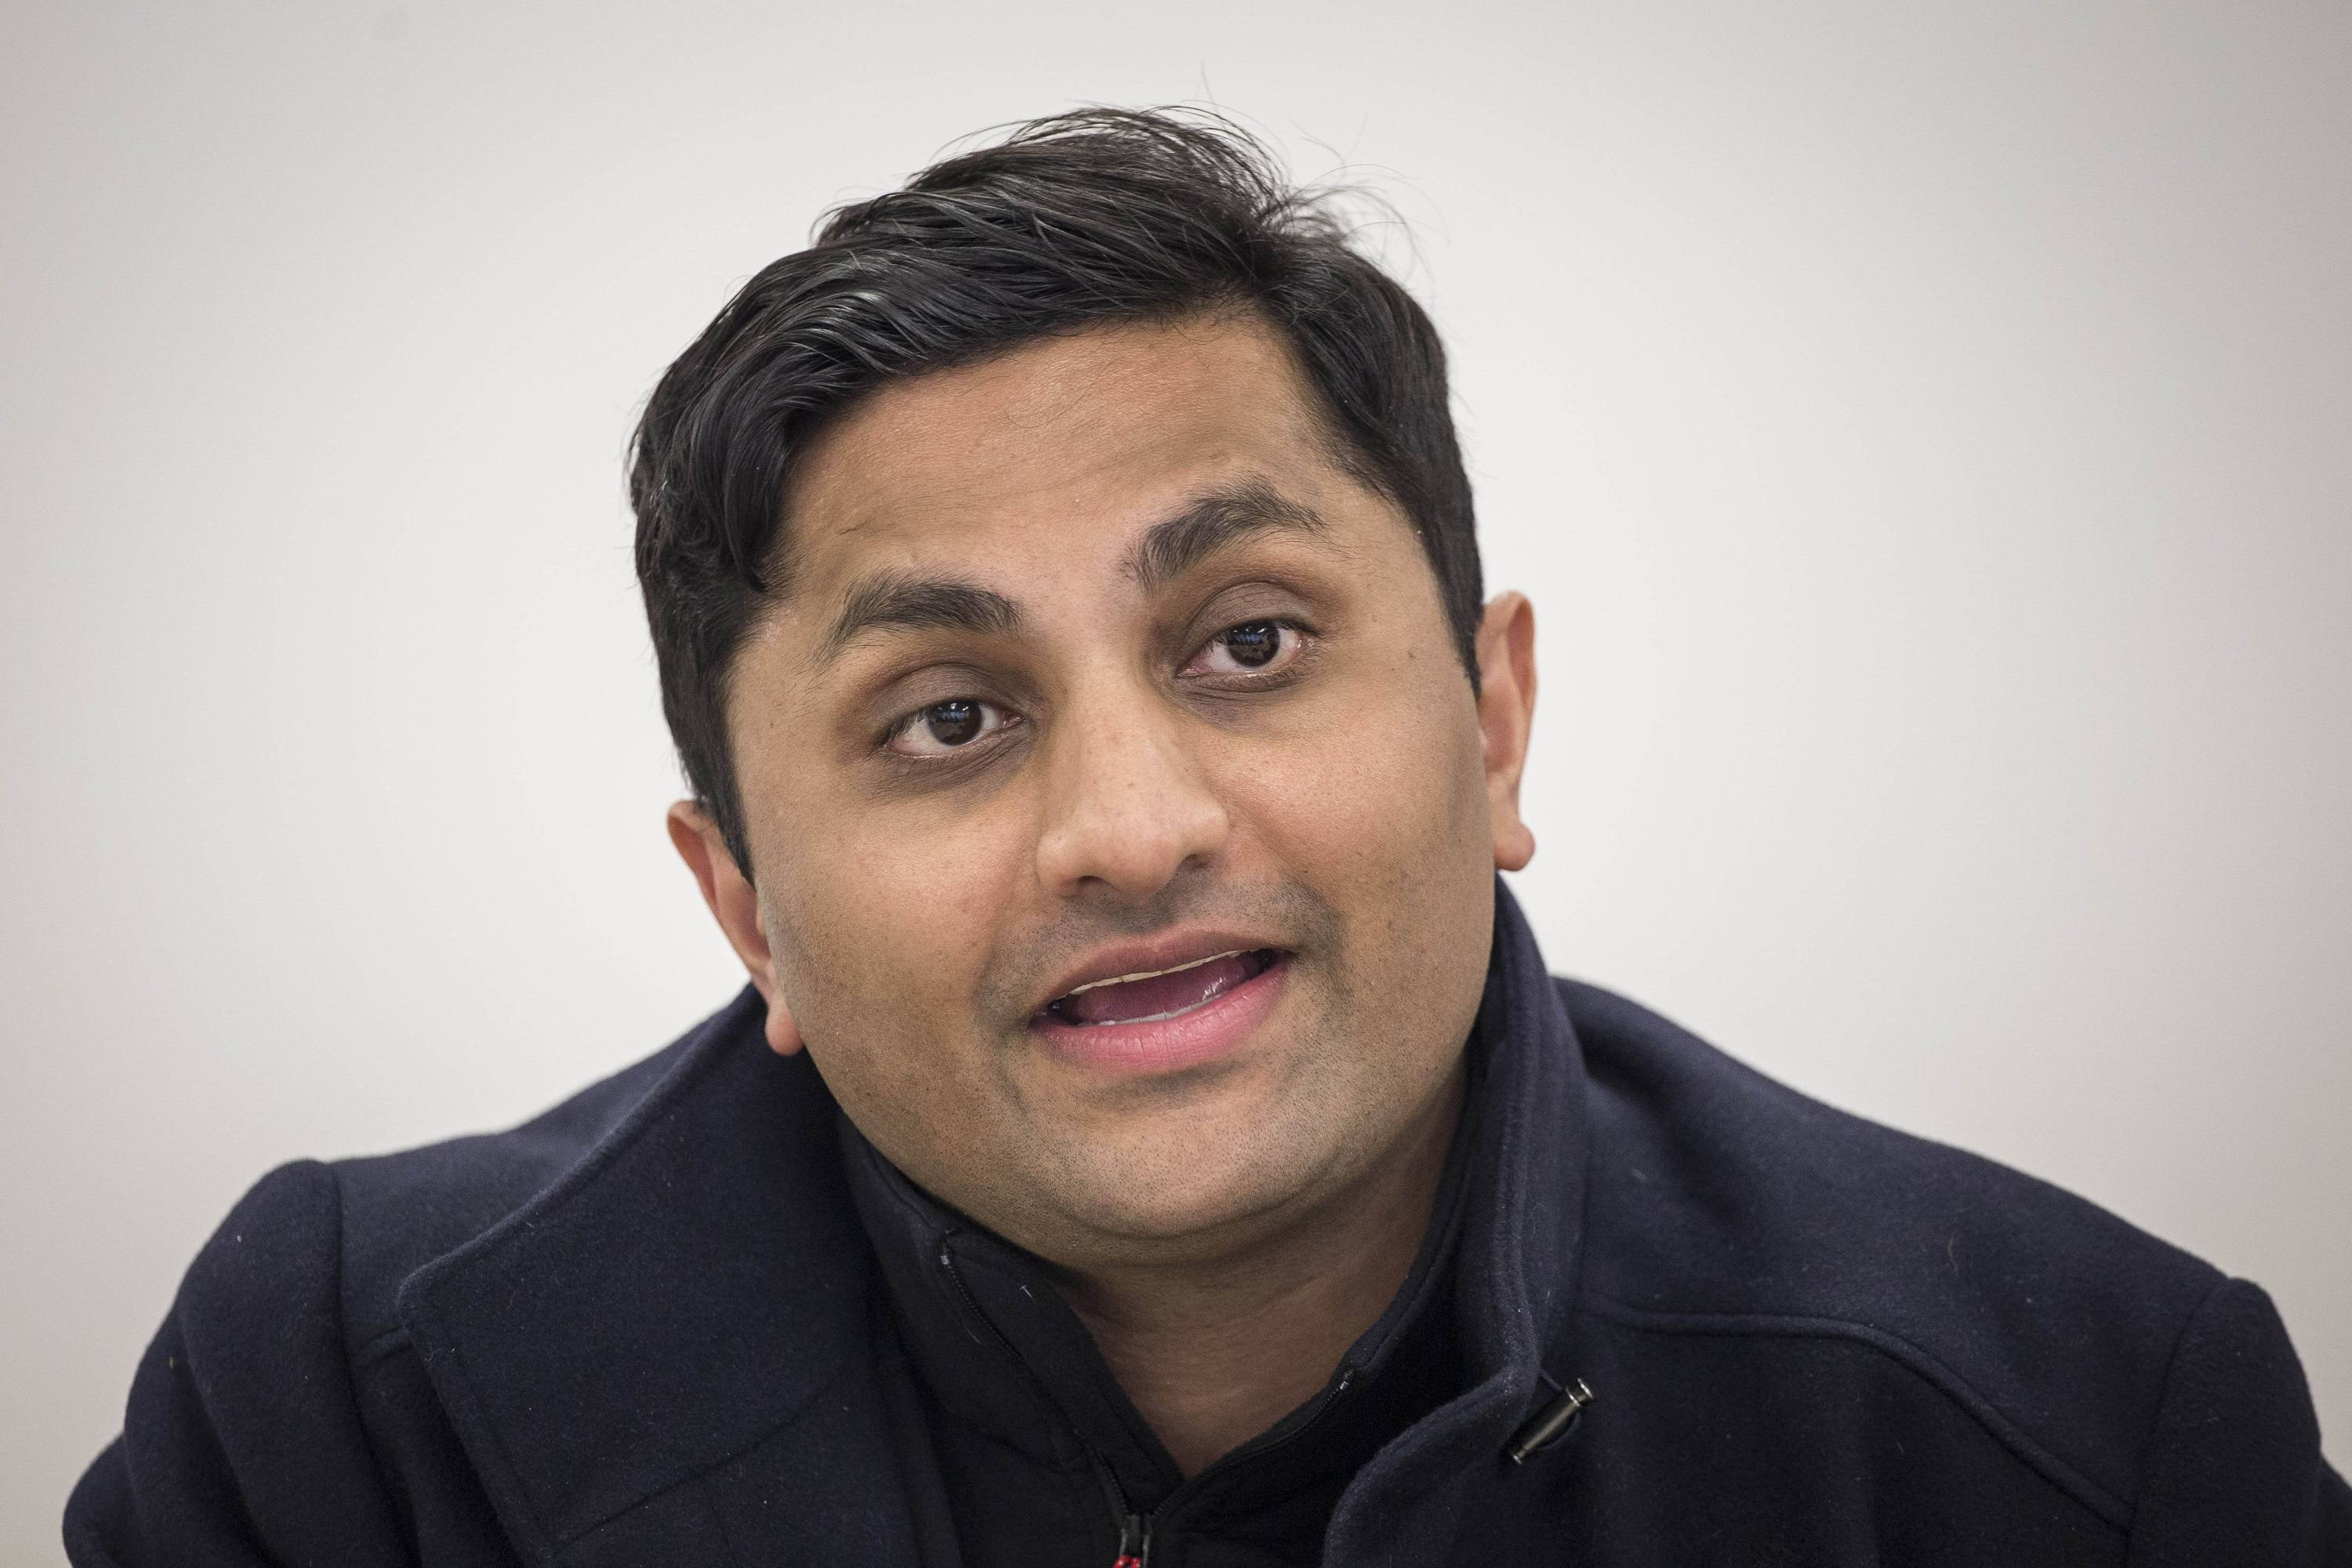 Democratic candidate for Illinois governor Ameya Pawar, a Chicago Alderman , says he's ending his bid for the Democratic nomination for Illinois governor because he doesn't have enough money. Pawar said in an email to supporters Thursday that he doesn't have the resources to mount a successful statewide campaign.